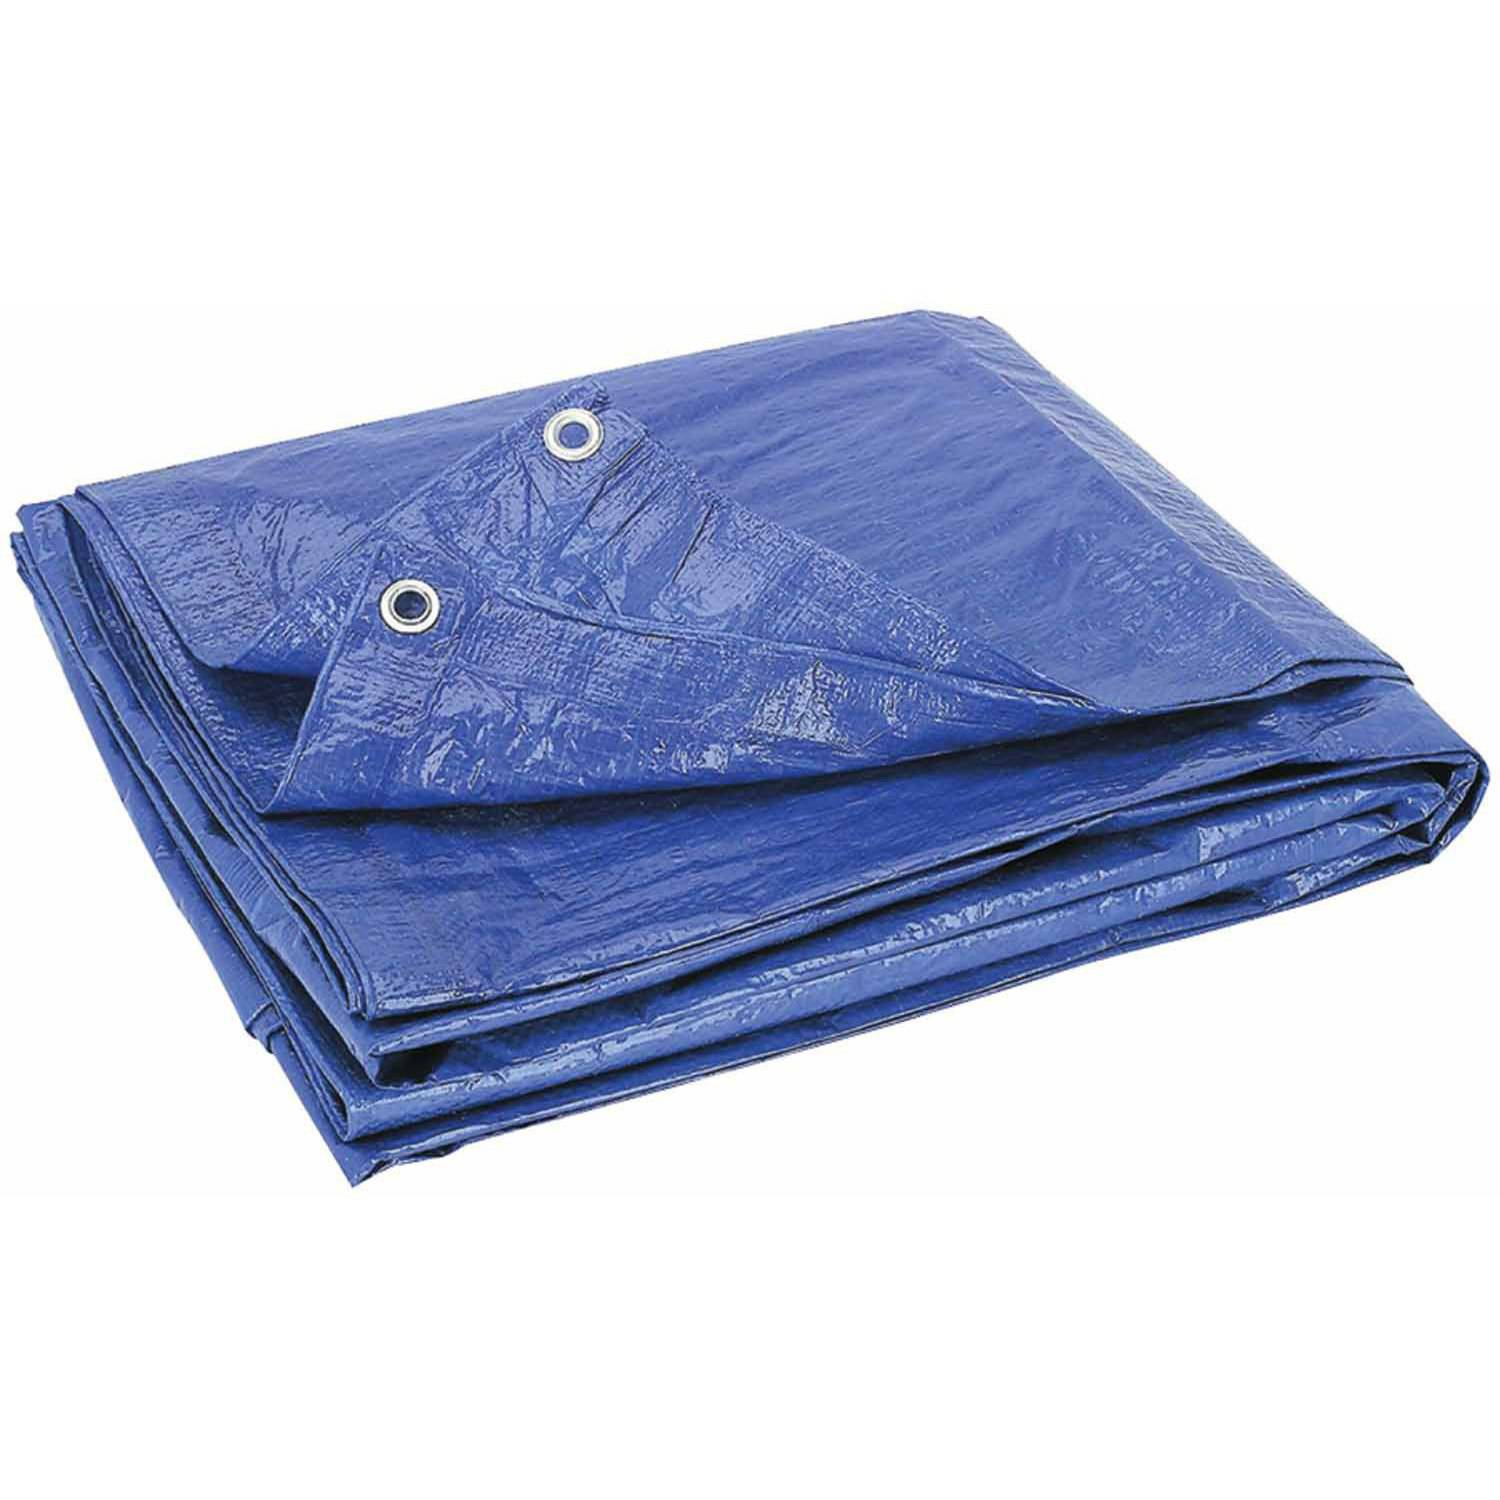 Howard Berger V1216 Reinforced Plastic Tarp, 12' x 16'